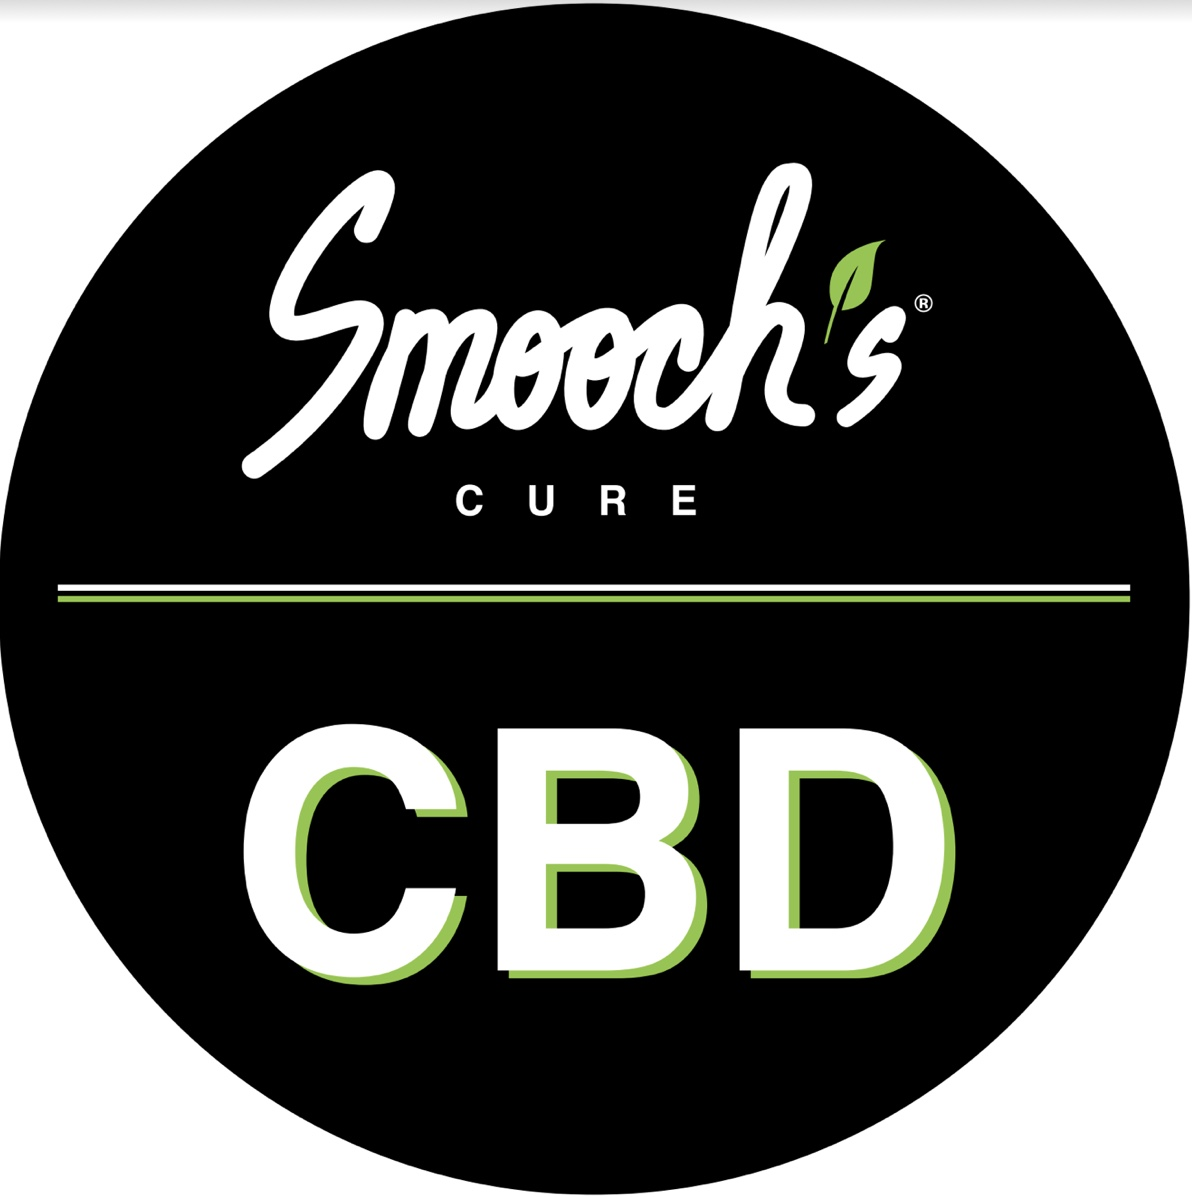 Smooch's Cure Cbd Logo